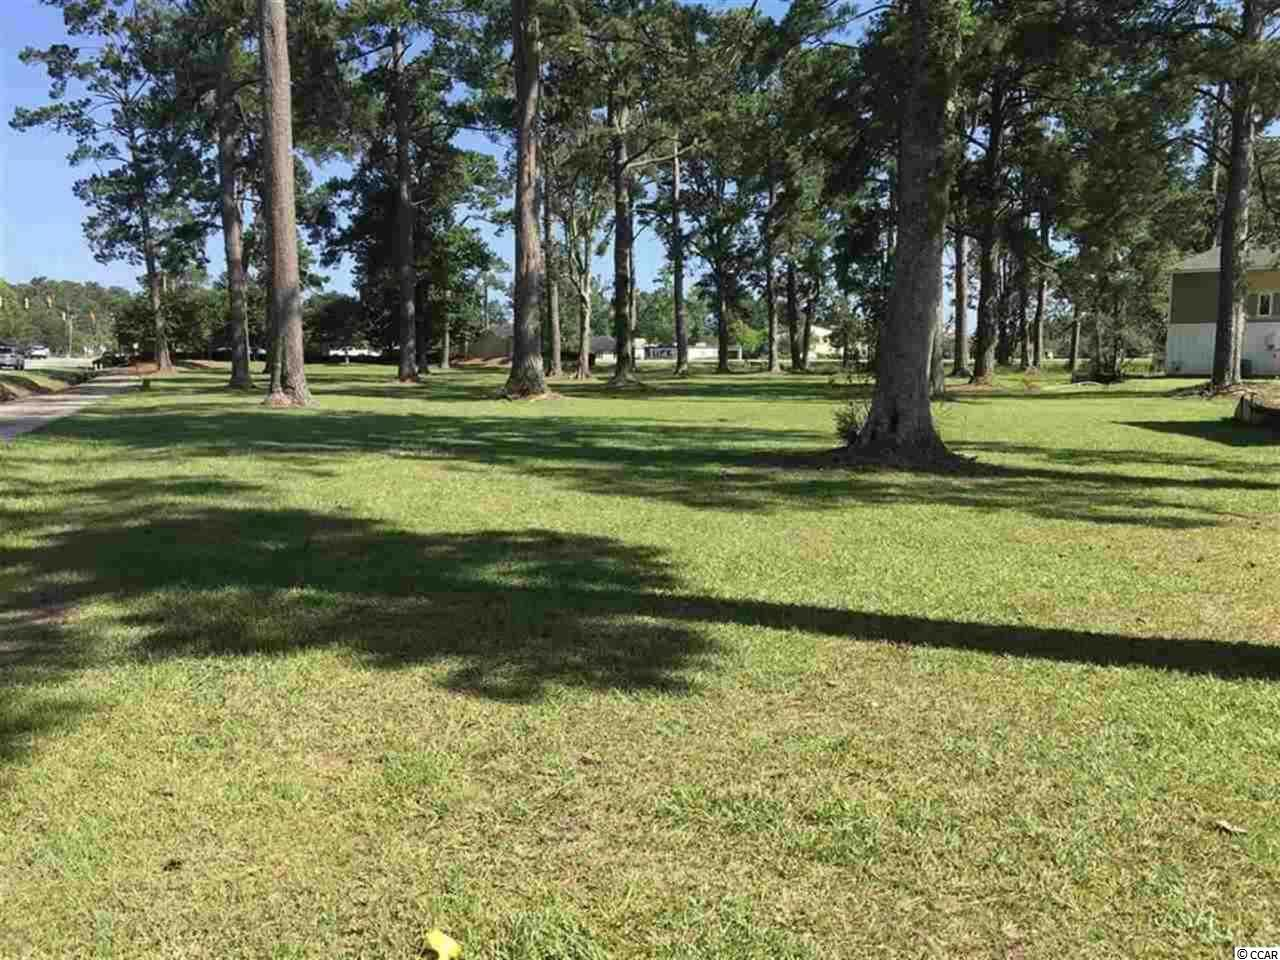 Opportunity to own land in the heart of Myrtle Beach.  Property is zoned RNV - Residential/Allows Visitors (which means short term rentals are allowed).